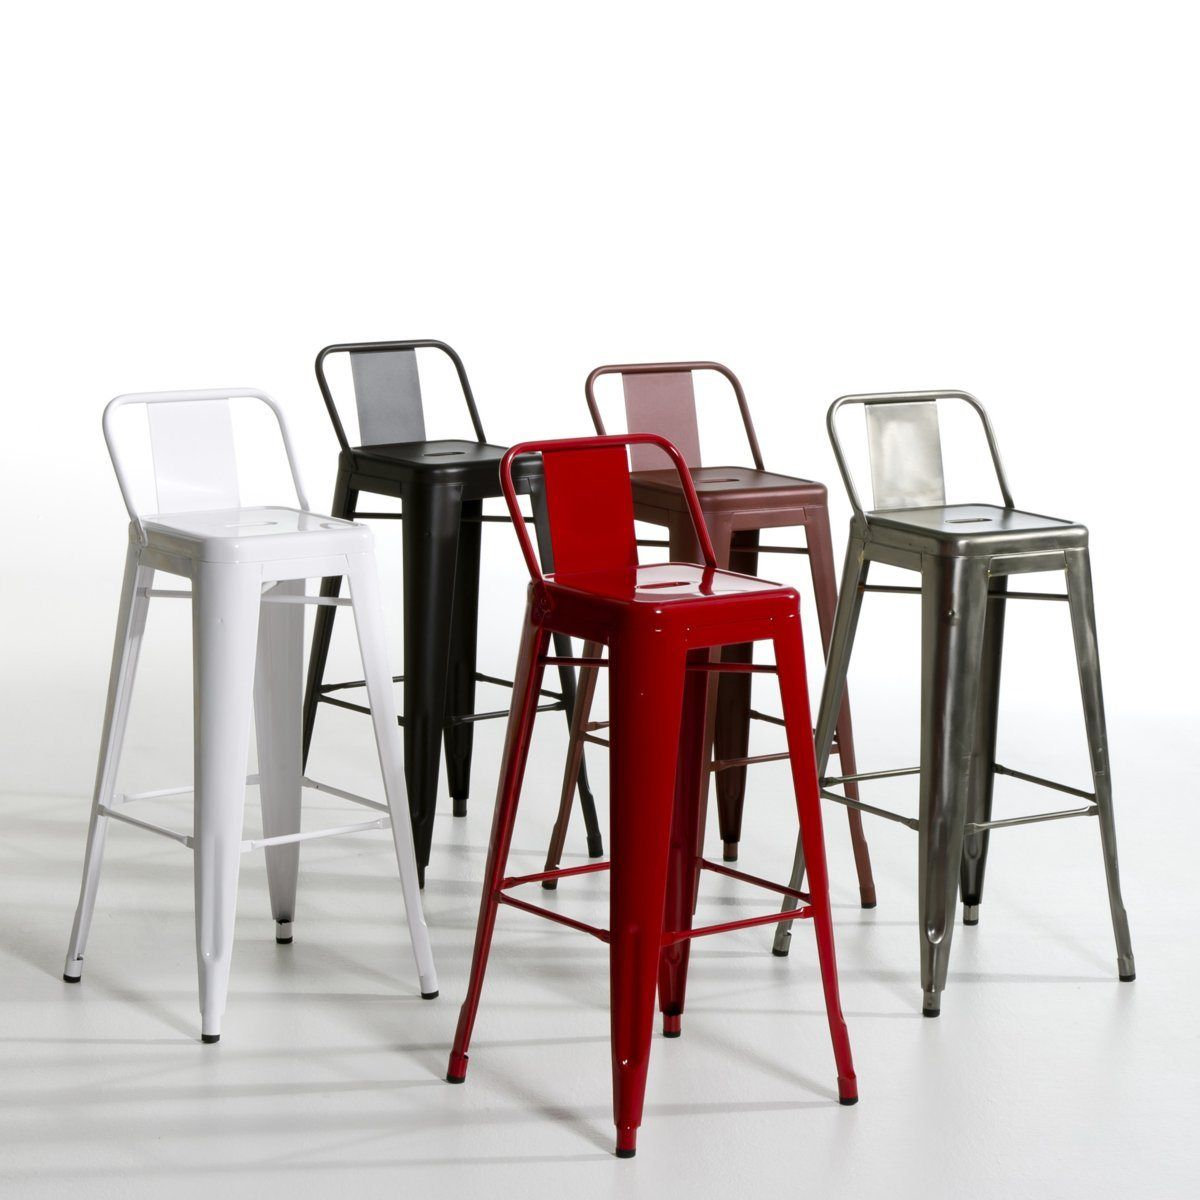 Tabouret Bar Tolix Chaise Haute Tolix Acier Am Pm Future Maison In 2019 Bar